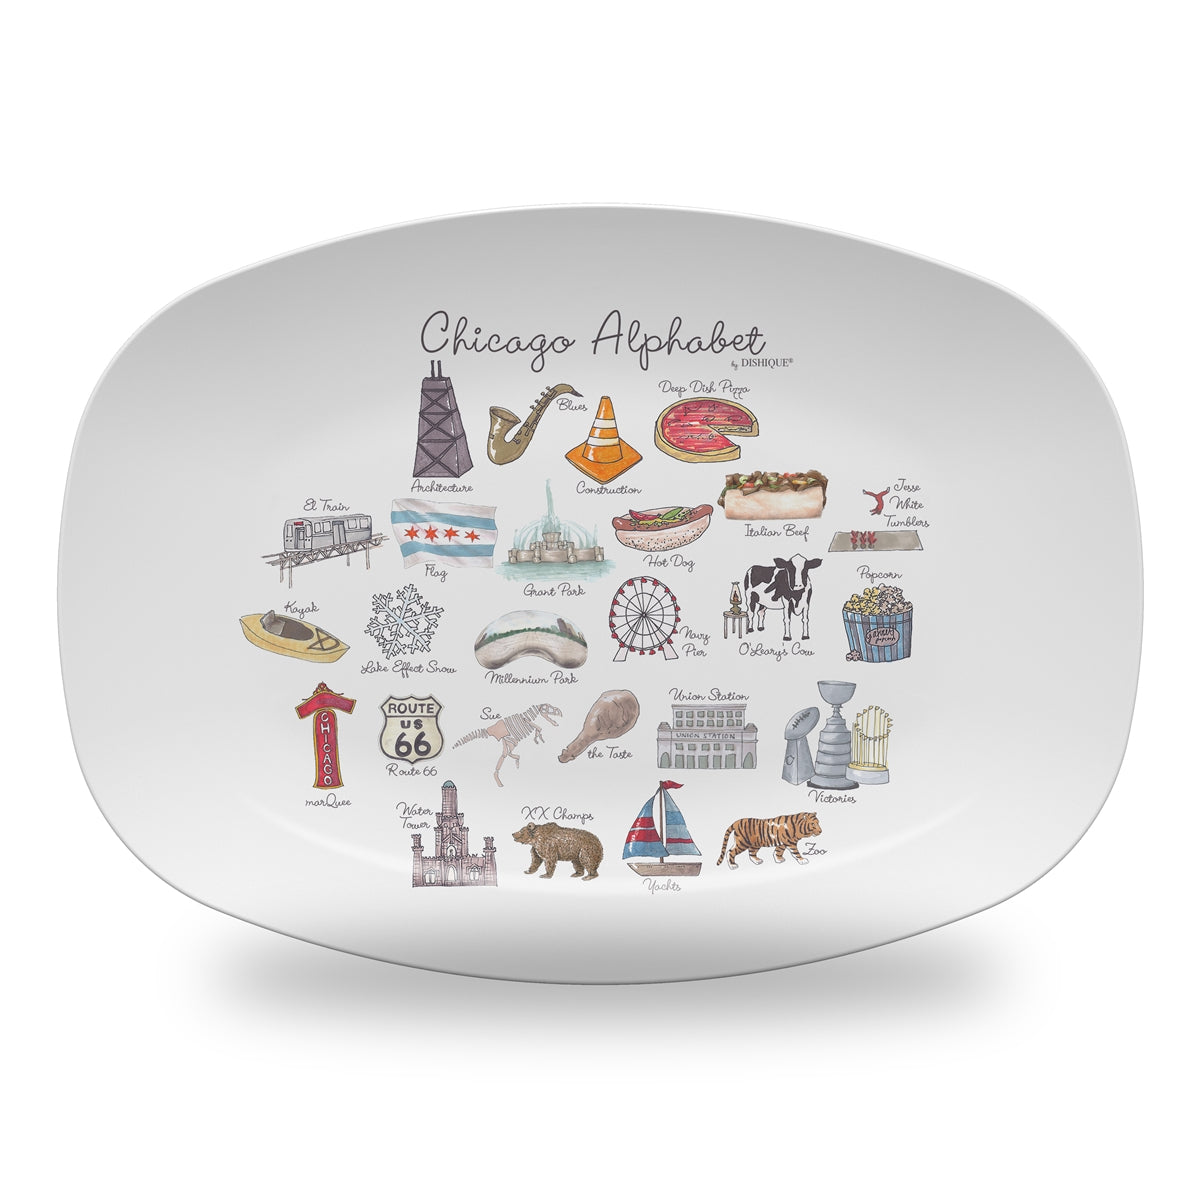 "Chicago Alphabet 14"" ThermoSaf Polymer Platter"